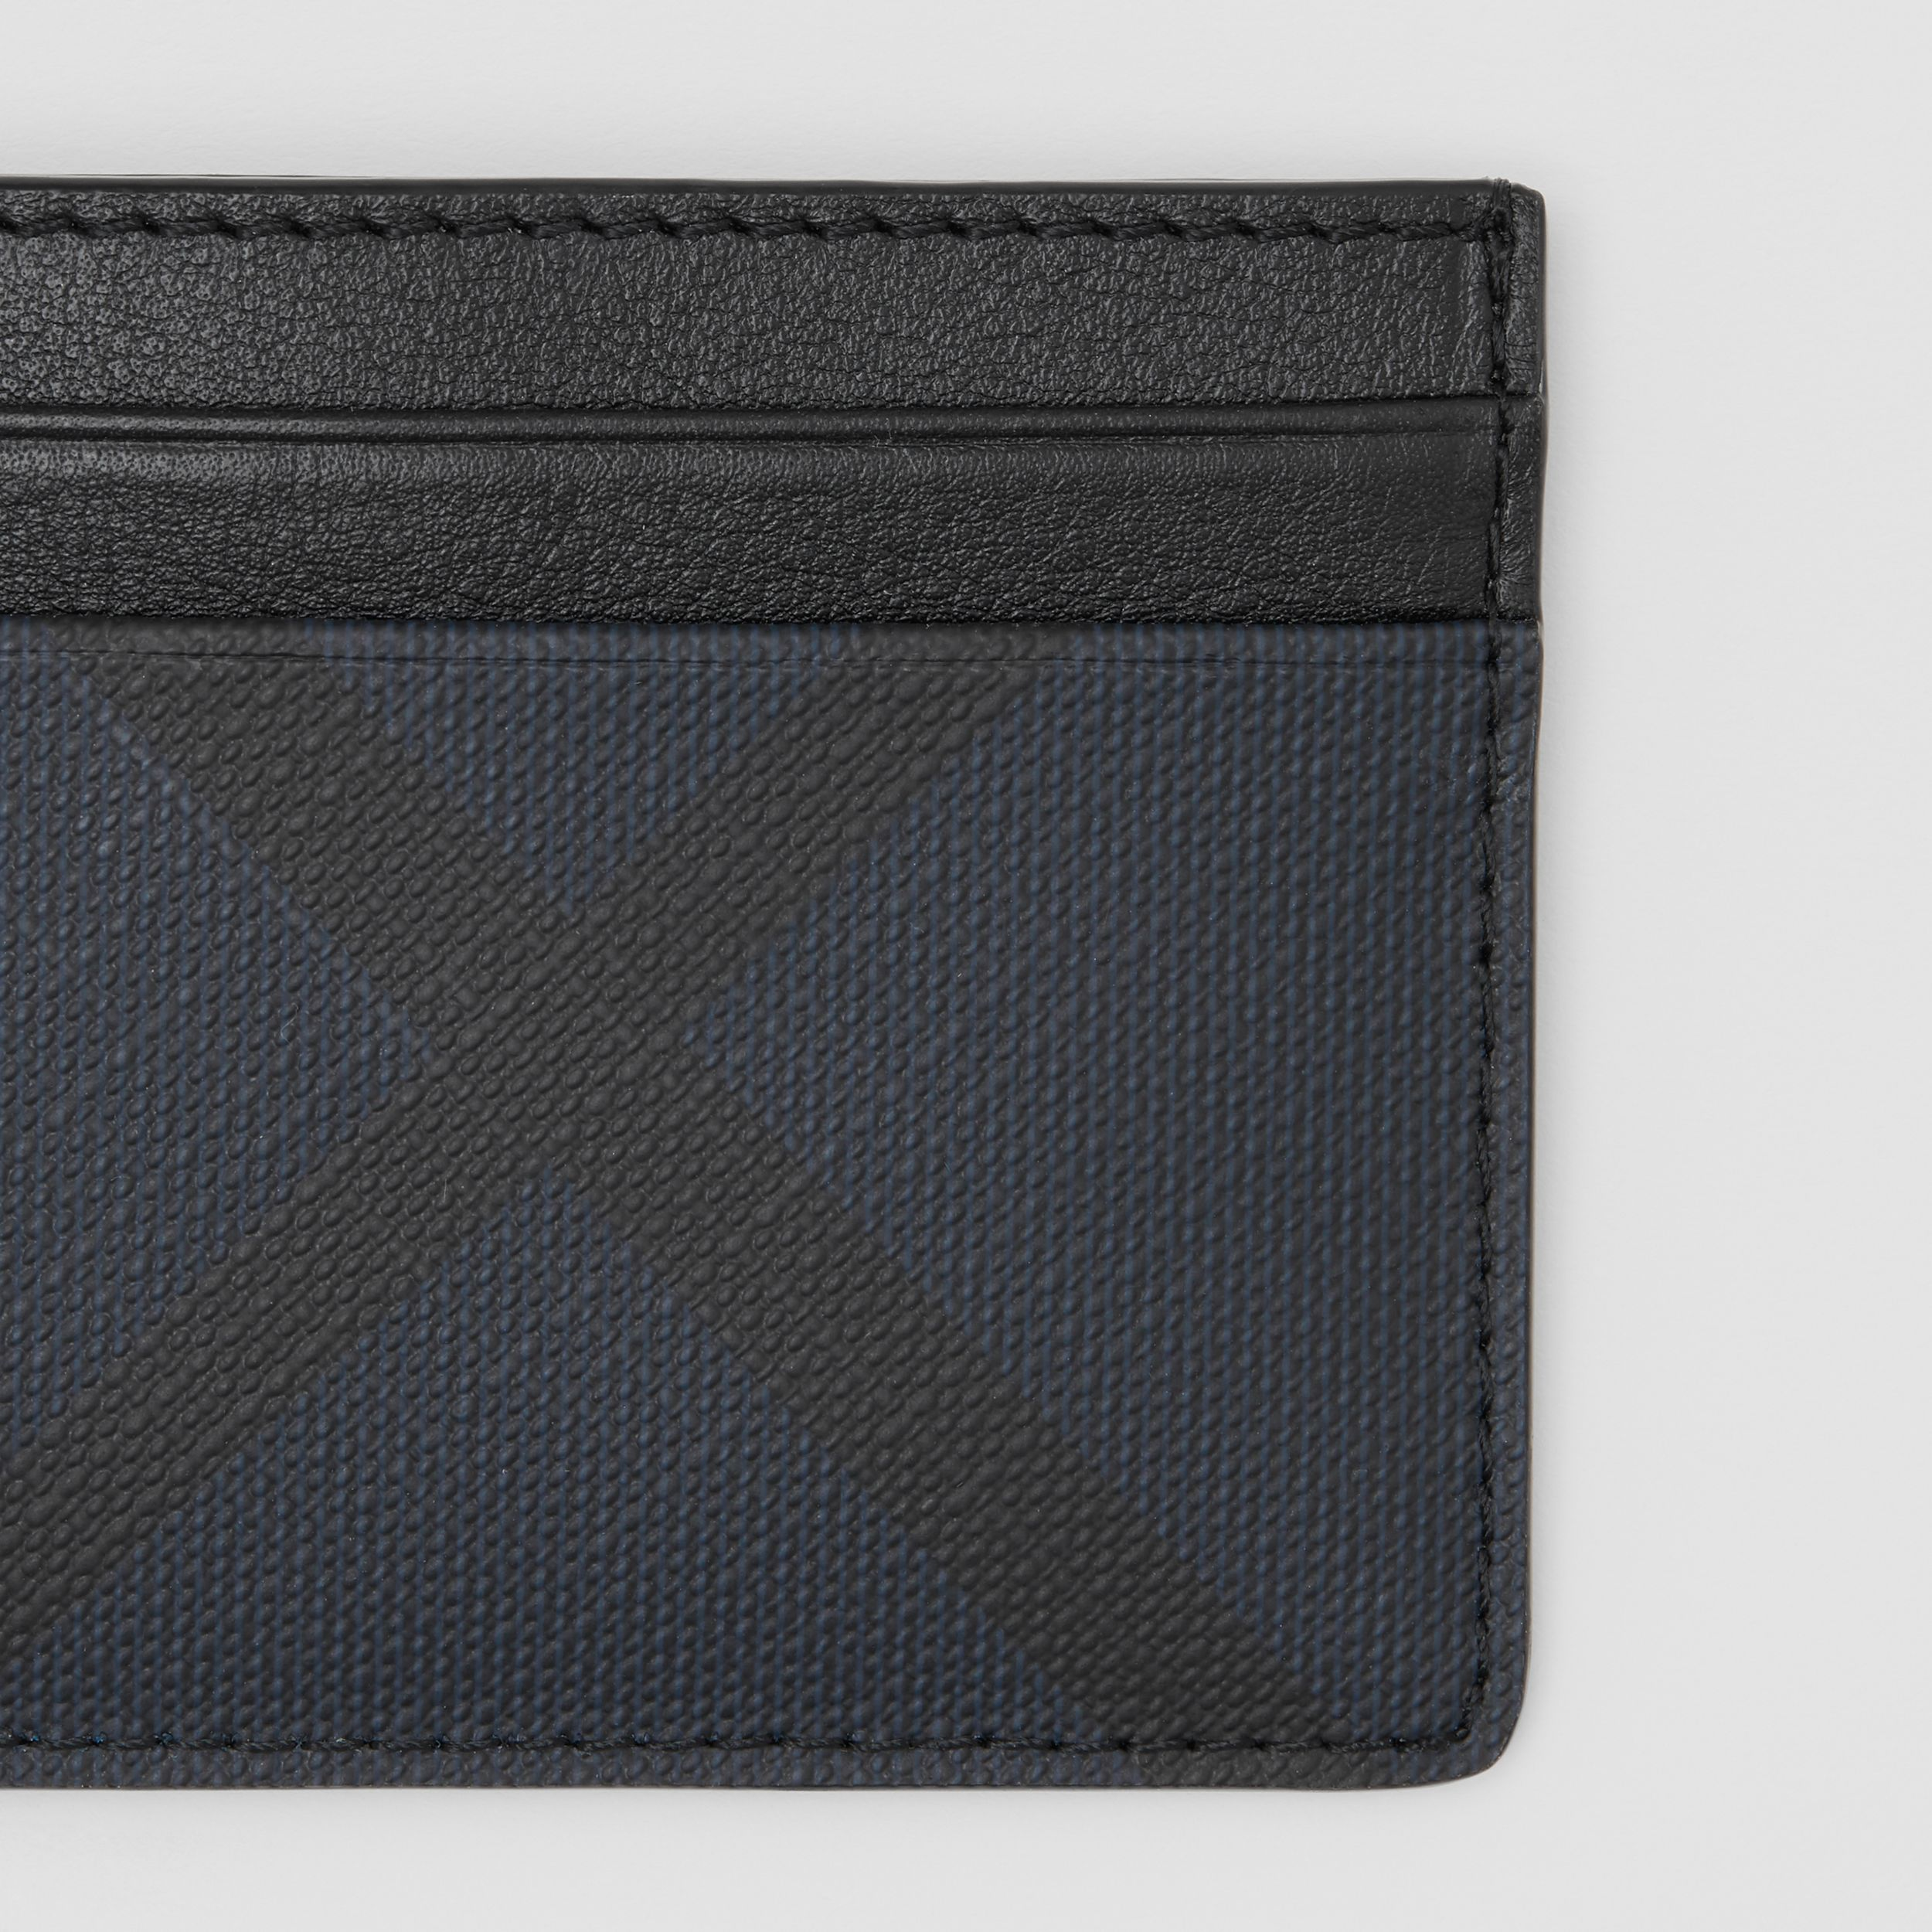 London Check and Leather Card Case in Navy - Men | Burberry - 2